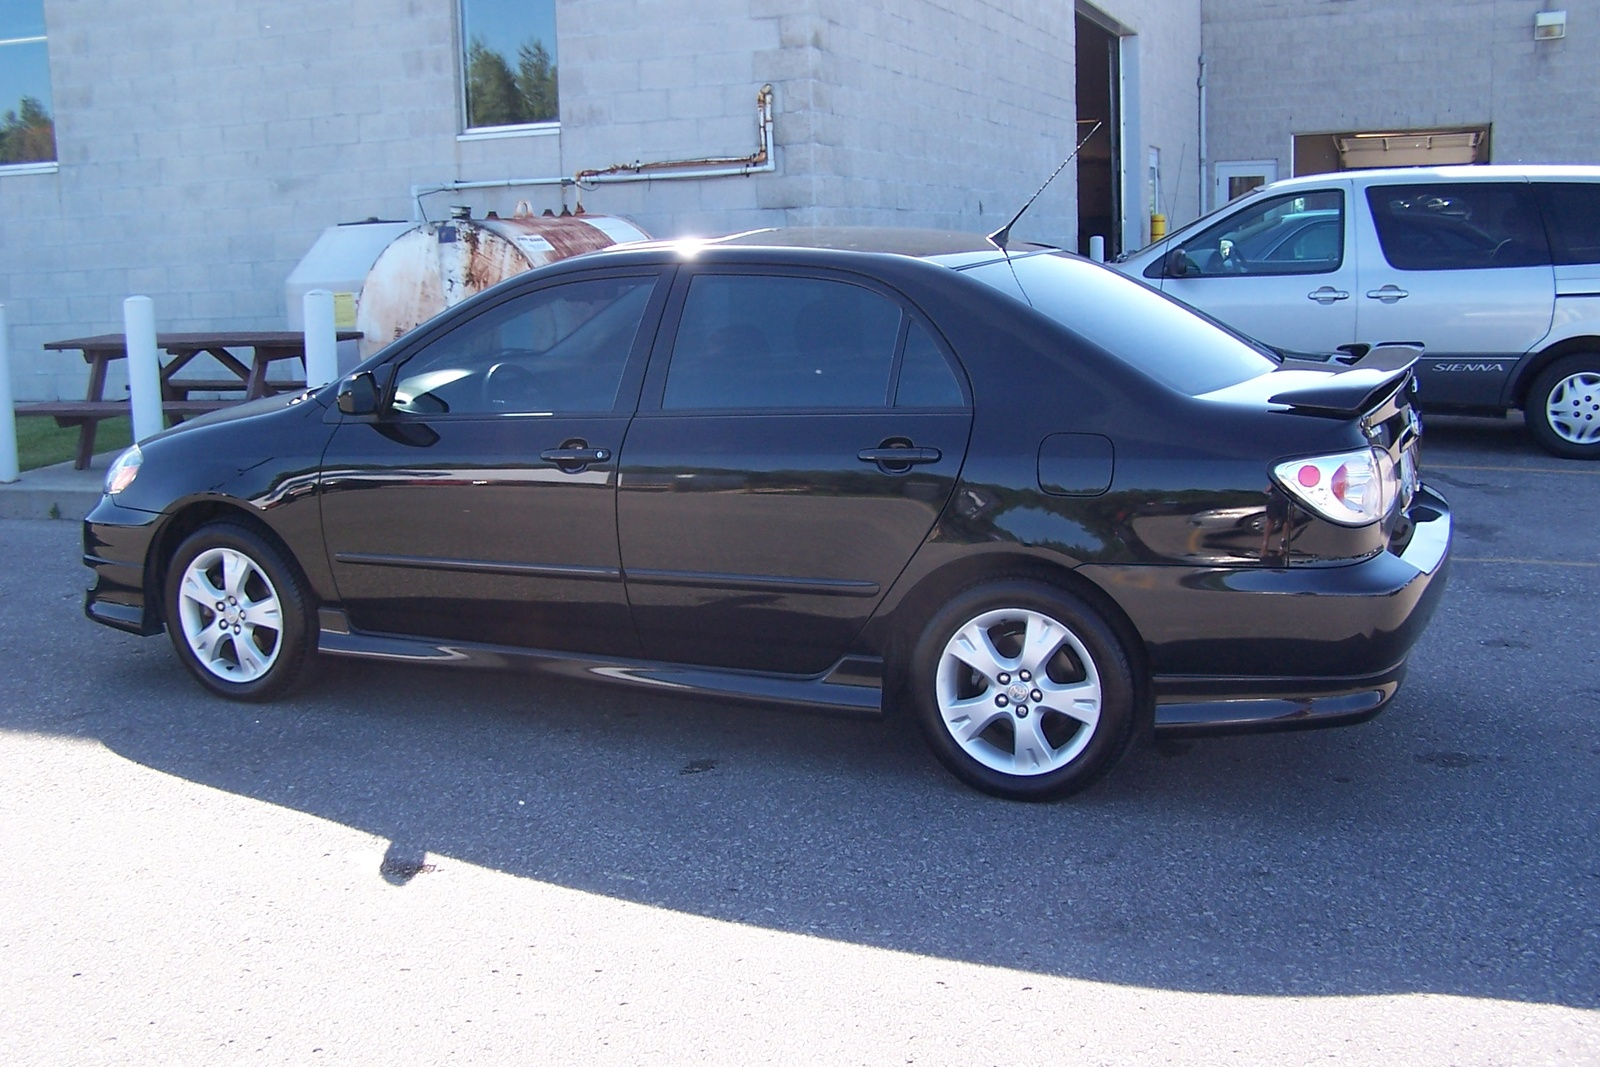 acura xrs html with 2005 Toyota Corolla S For Sale Cargurus on 2005 Toyota Corolla S For Sale Cargurus moreover 2009 Ford Fusion Review Car Reviews Car And Driver in addition Toyota Corolla besides Bora Yahoo also 2014 Ford F150 Black Widow.